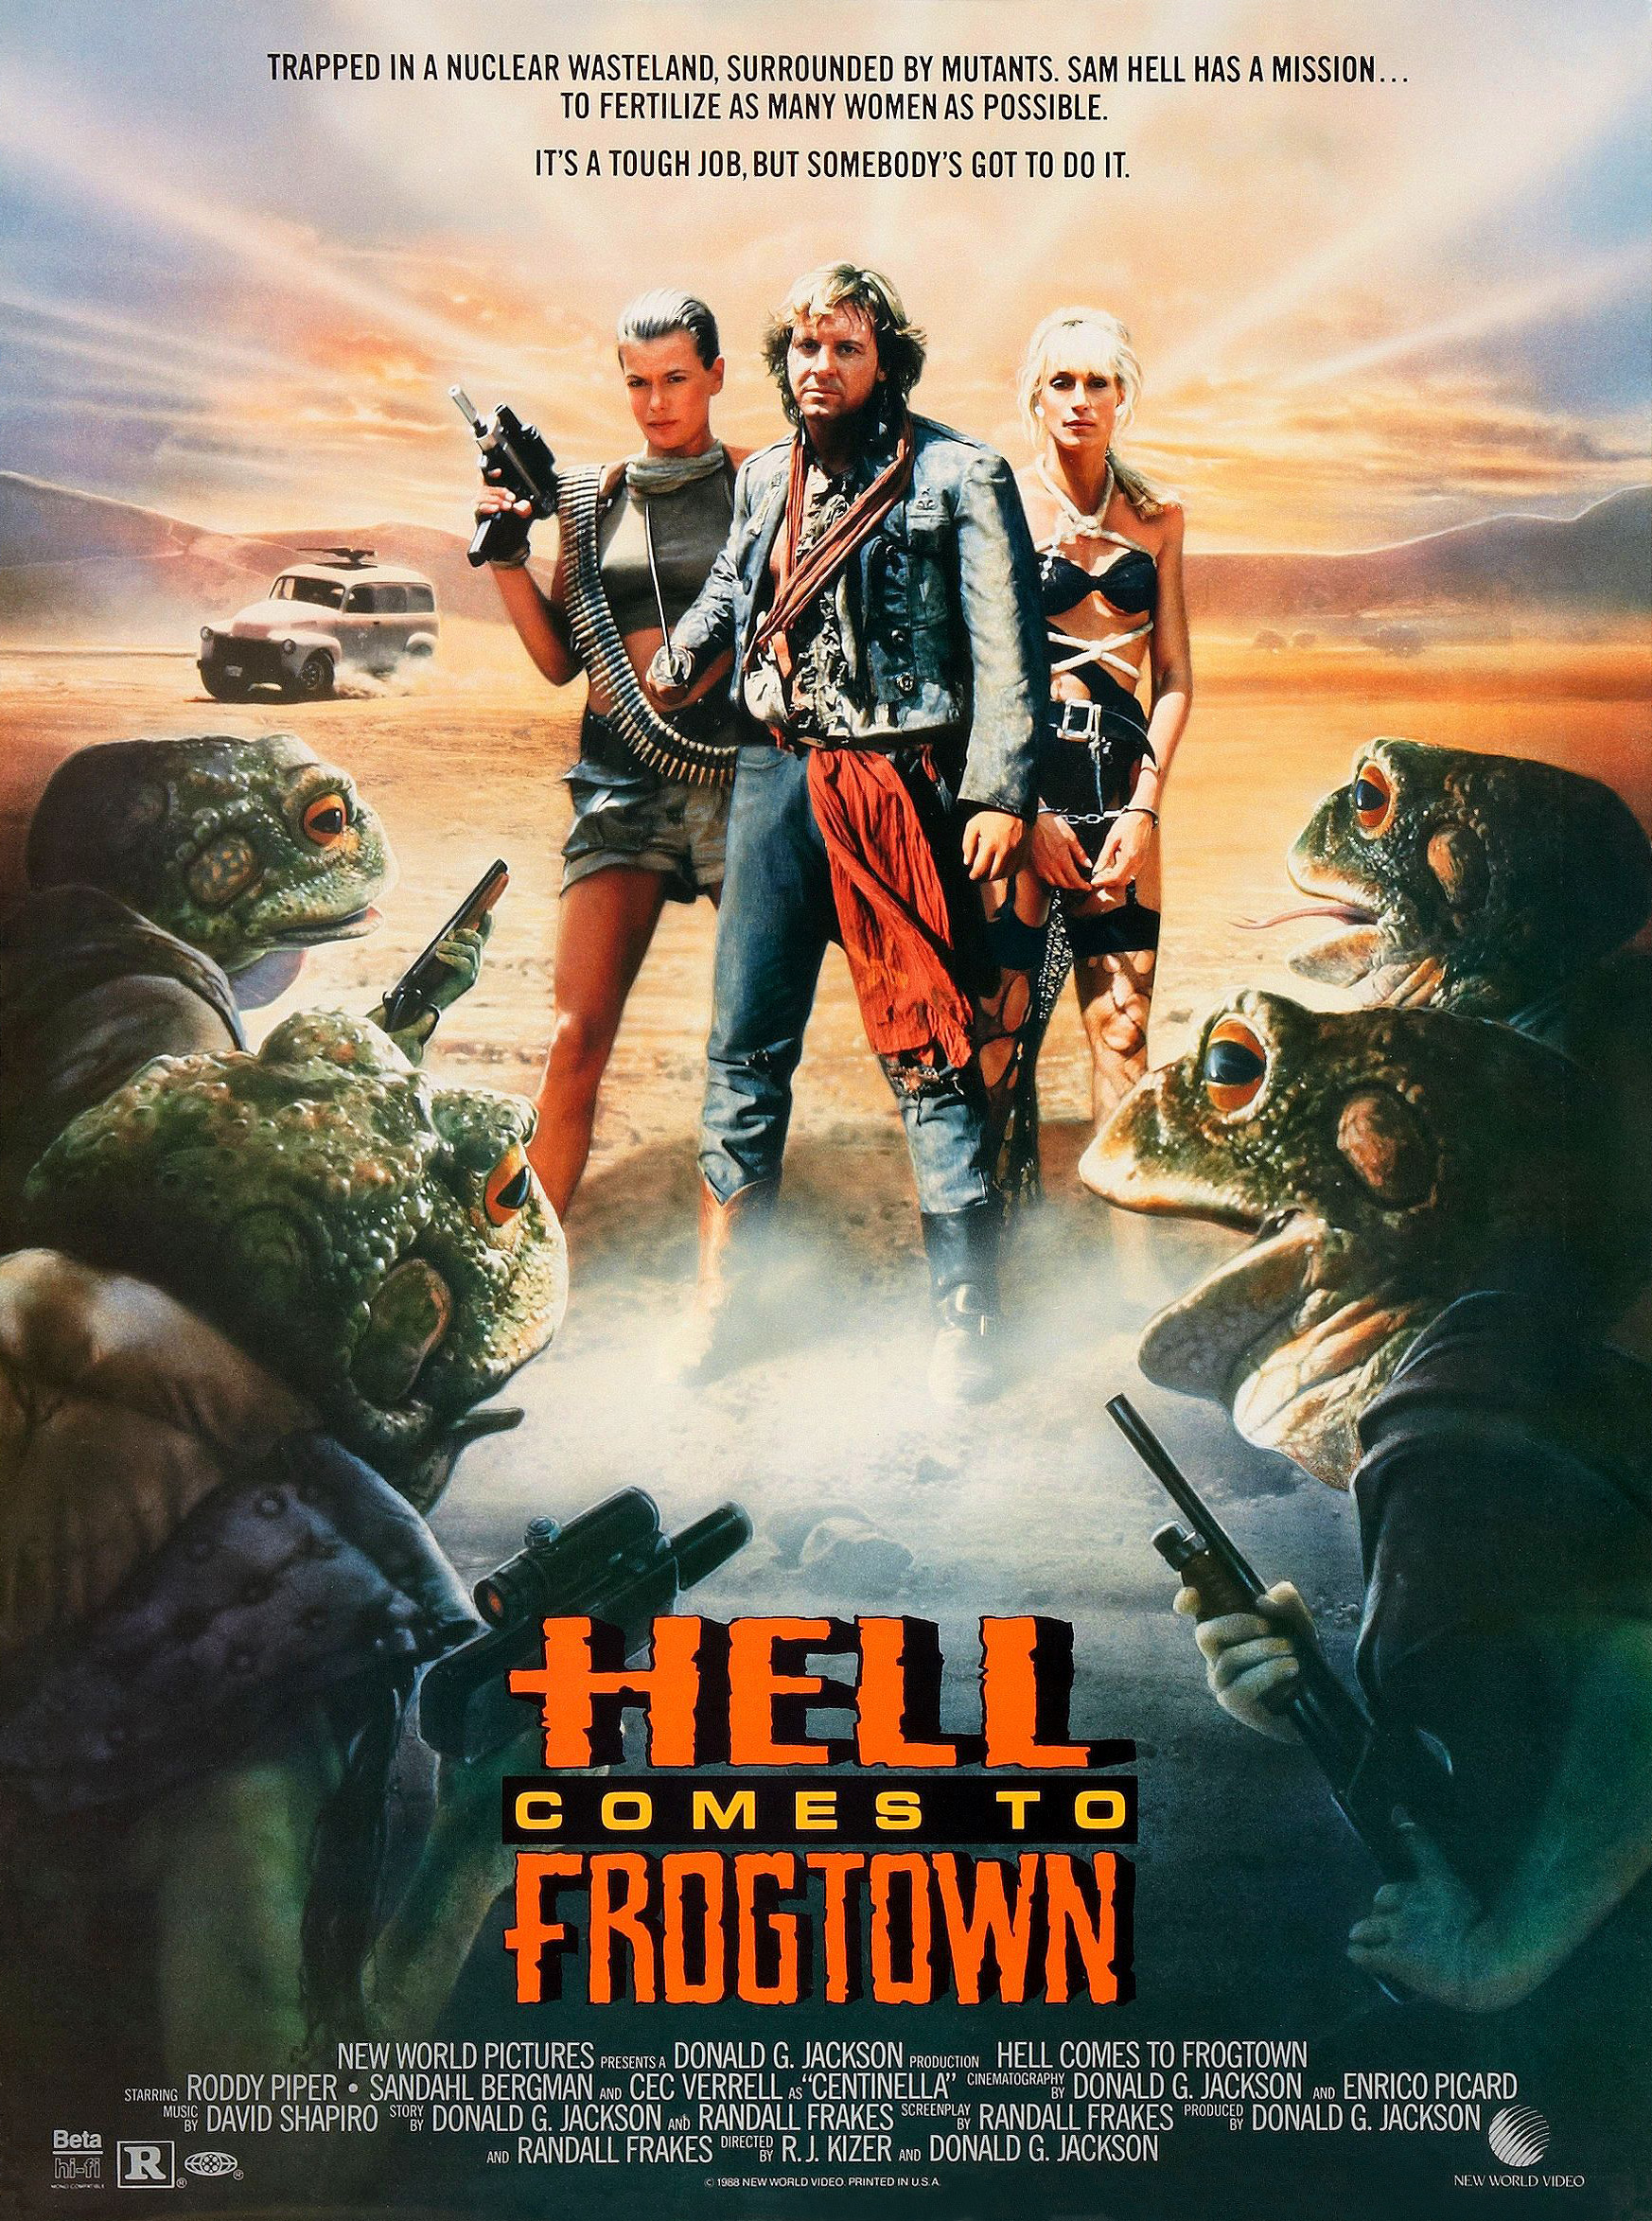 Ncis, the show that's been on the air since 2003, has one of the more recognizable casts on television — and its spent many years at the top of the ratings charts. Hell Comes to Frogtown - BMFcast61 - Dance of the Three Snakes